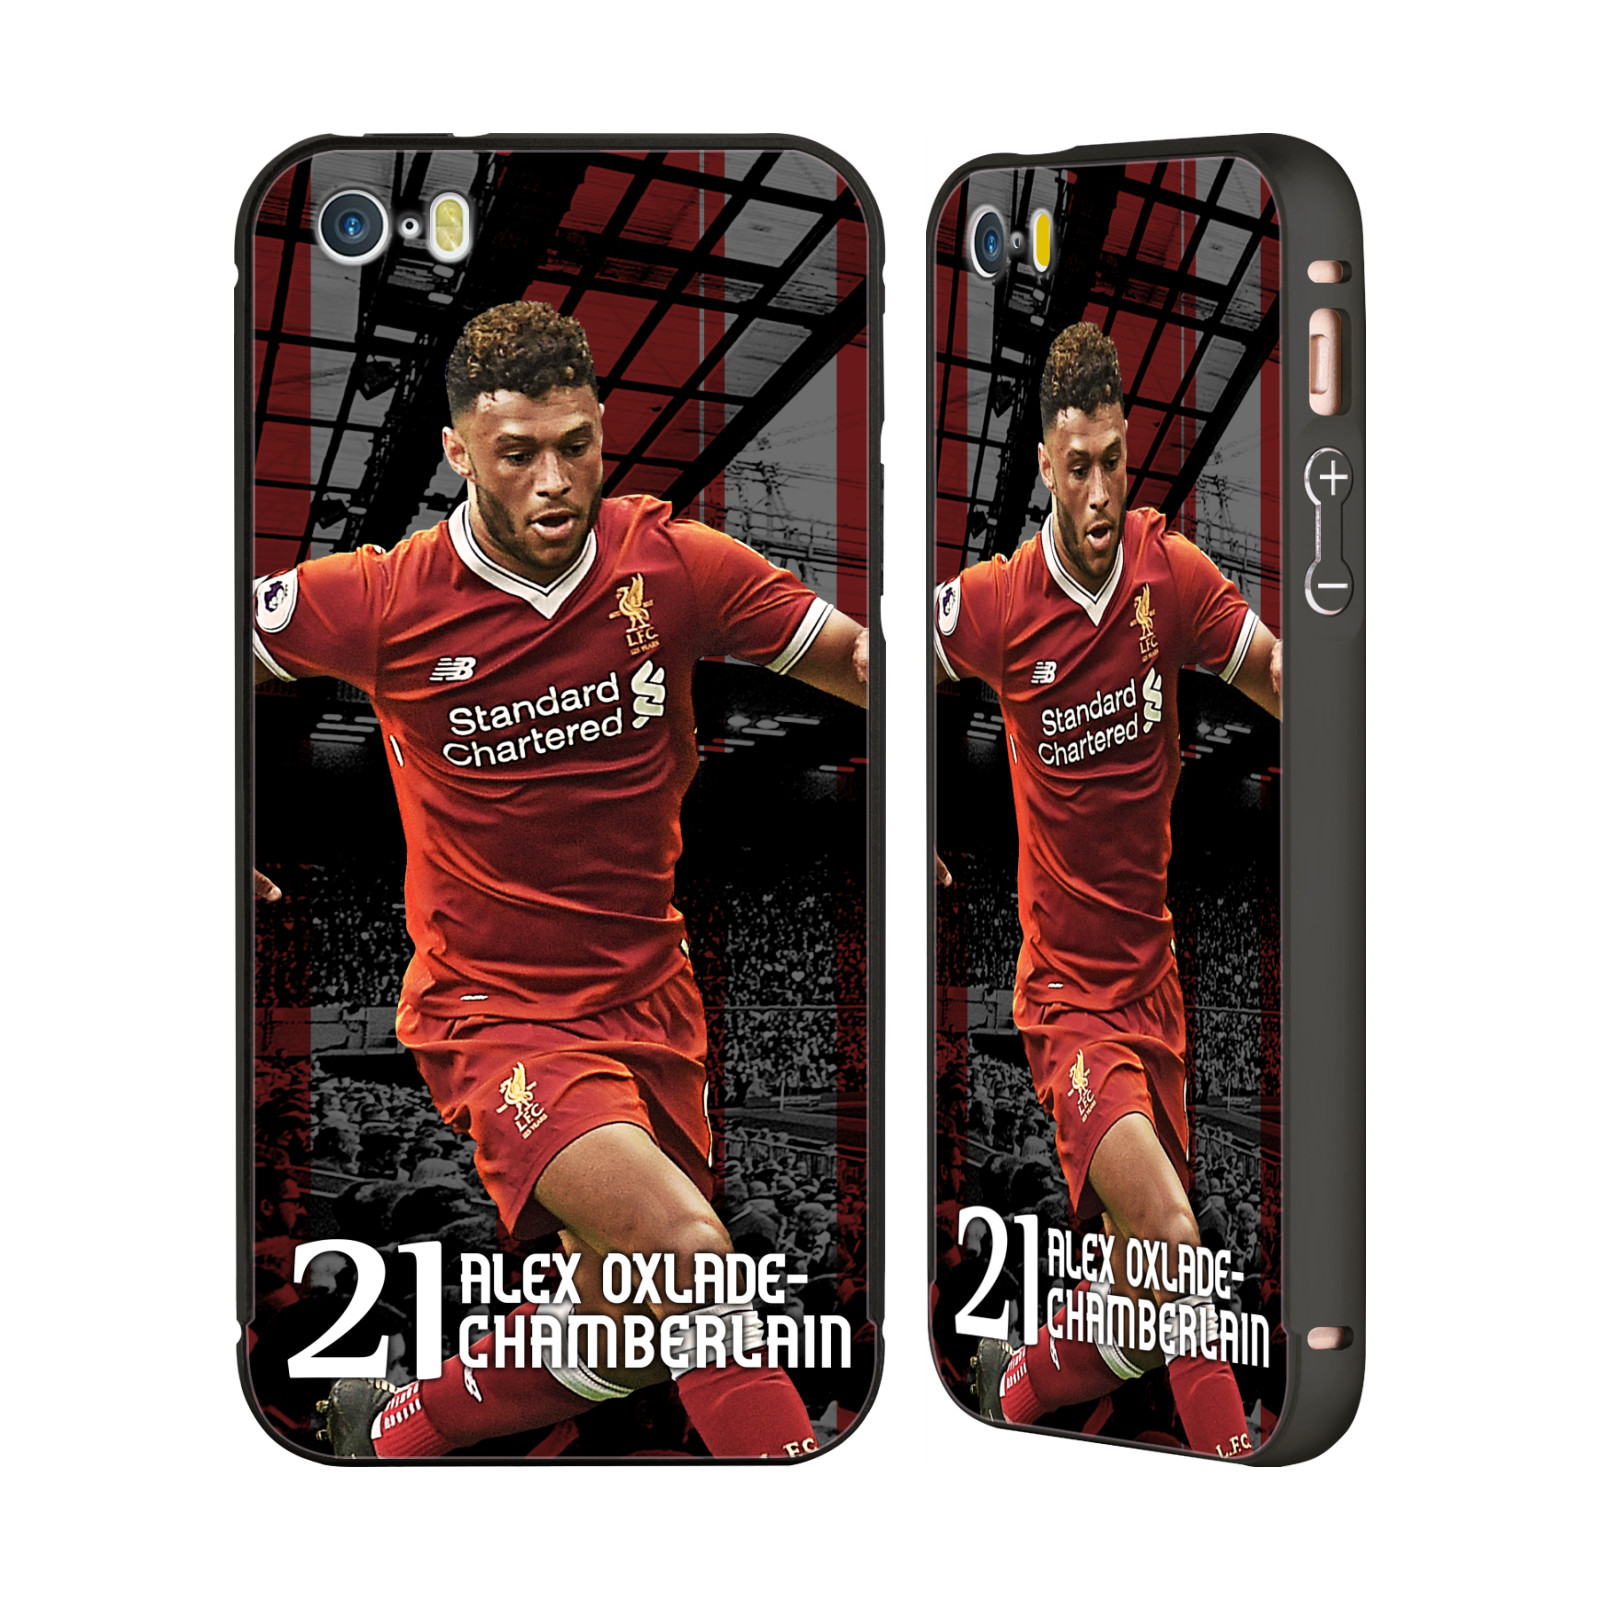 OFFICIAL LIVERPOOL FOOTBALL CLUB 2017/18 FIRST TEAM 1 BLACK ALUMINIUM BUMPER SLIDER CASE FOR IPHONE PHONES